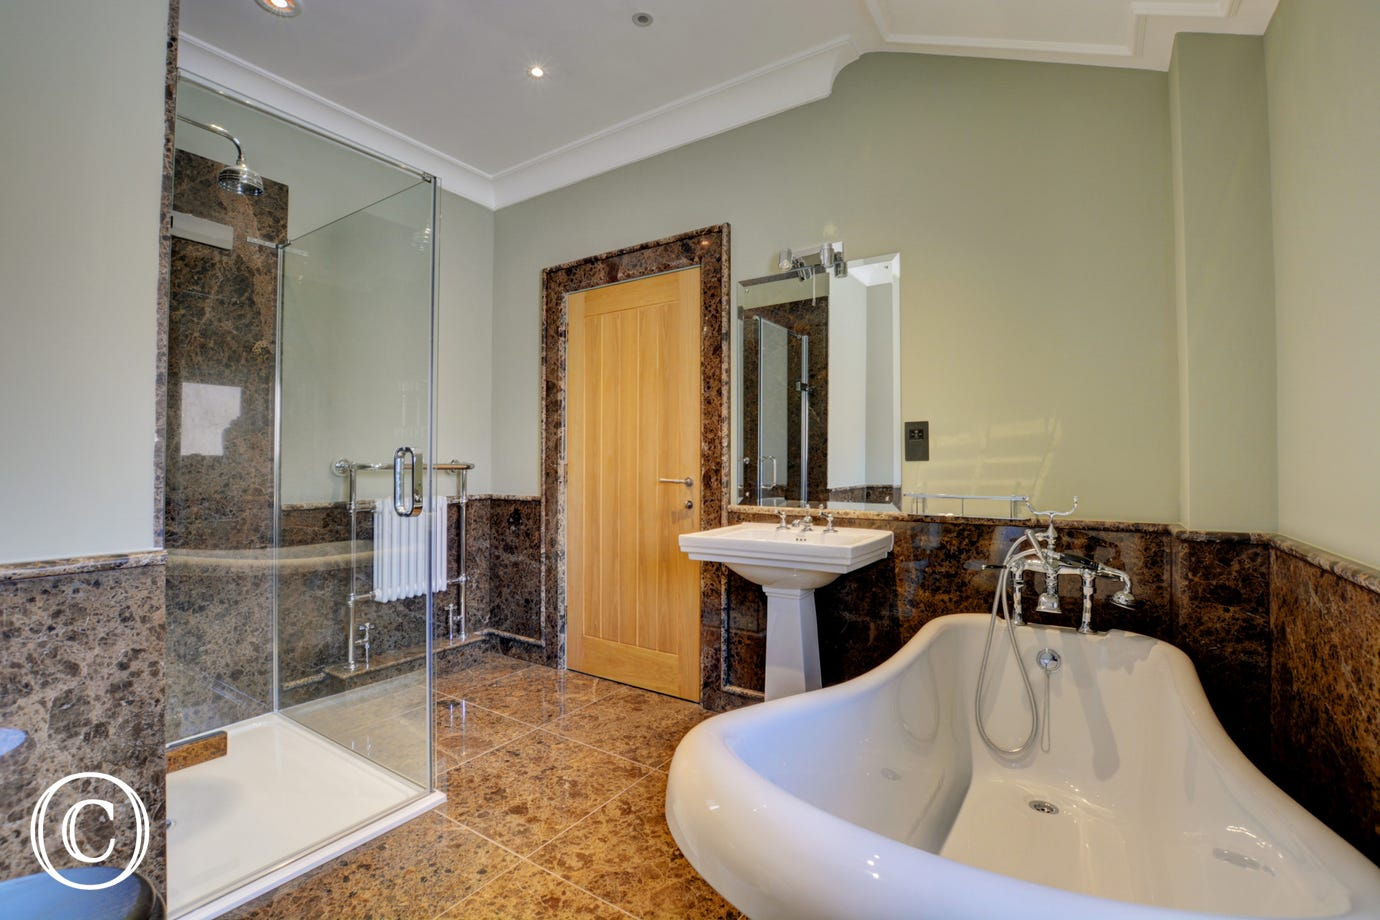 En-suite with bath, separate shower cubicle, washbasin and wc